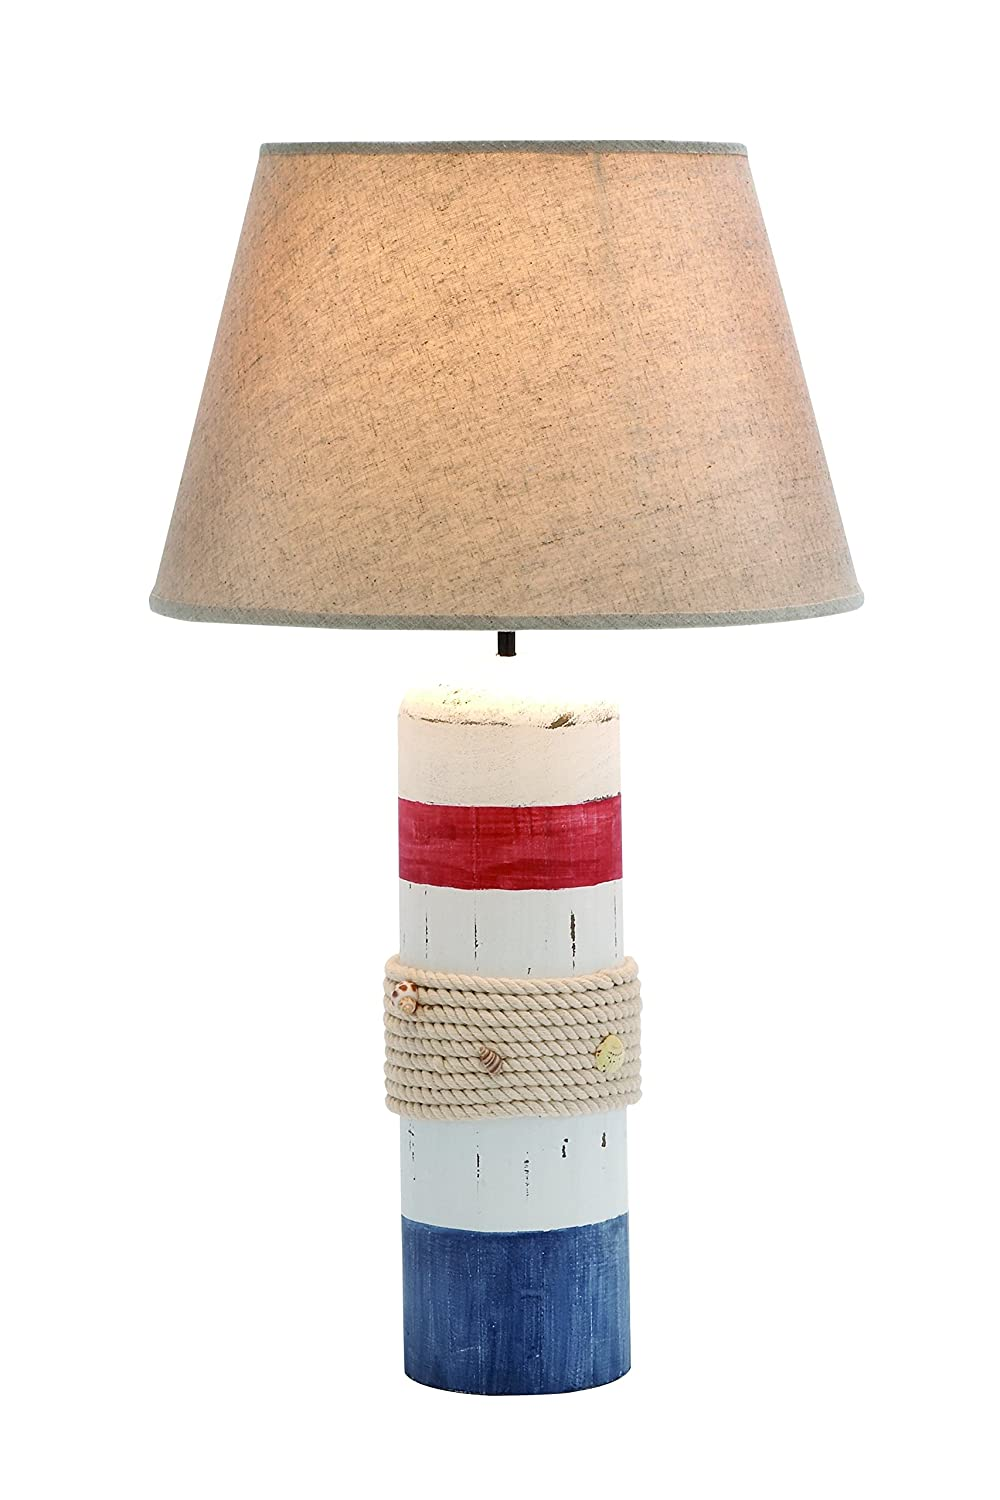 Amazon benzara stylish white wooden buoy table lamp with red amazon benzara stylish white wooden buoy table lamp with red and blue band kitchen dining geotapseo Image collections